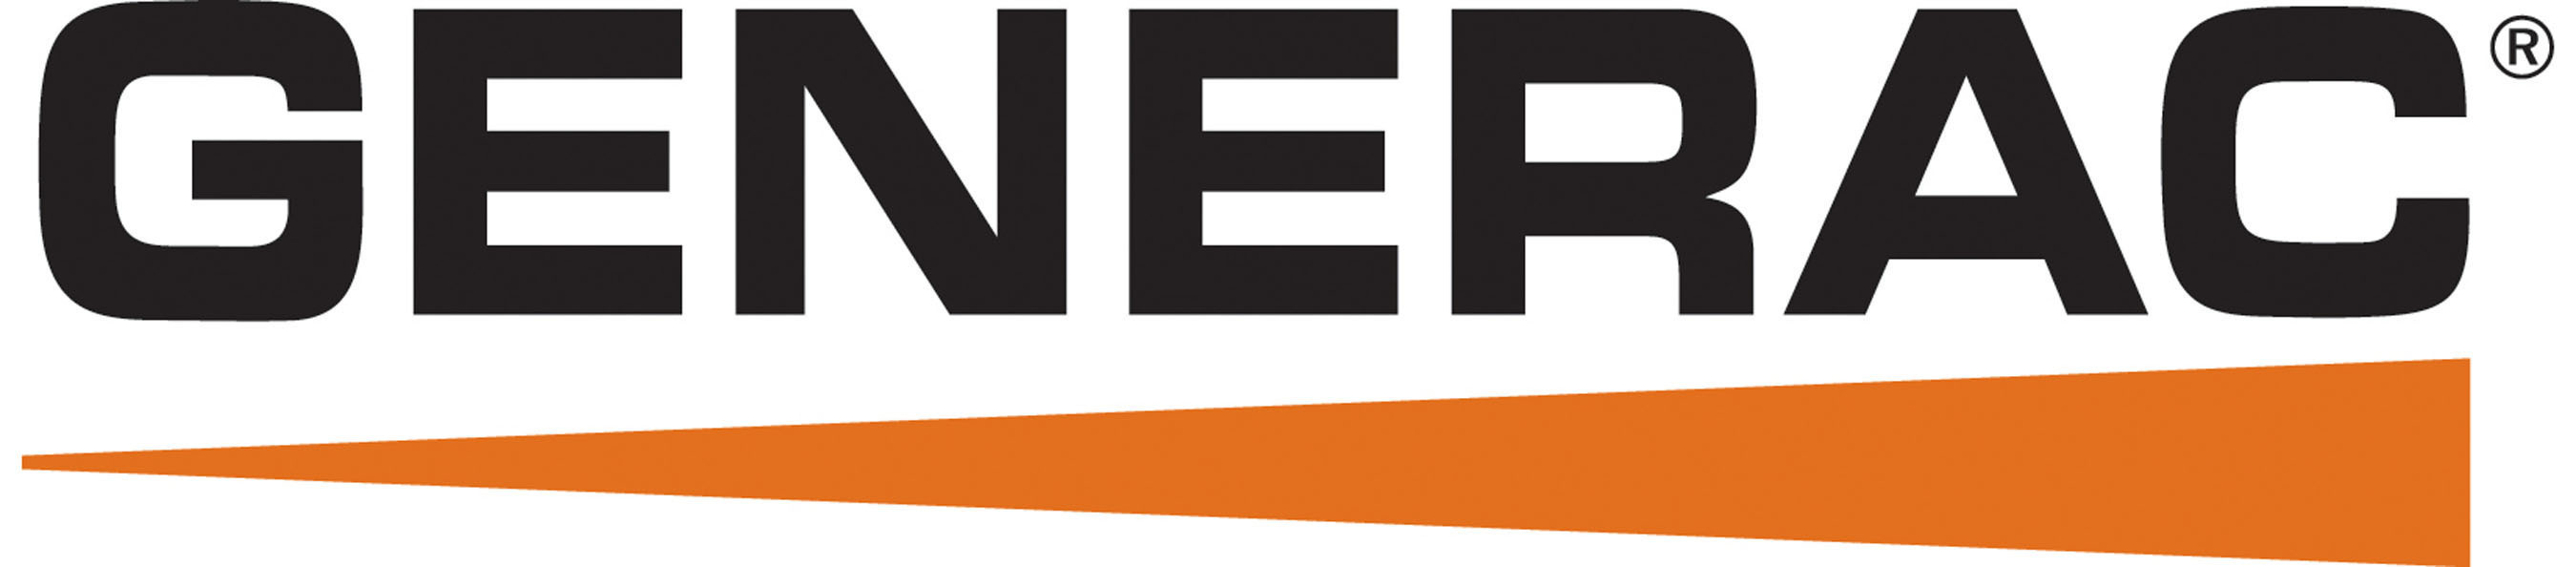 Generac is a leading manufacturer of generators and provides a broad range of power solutions.